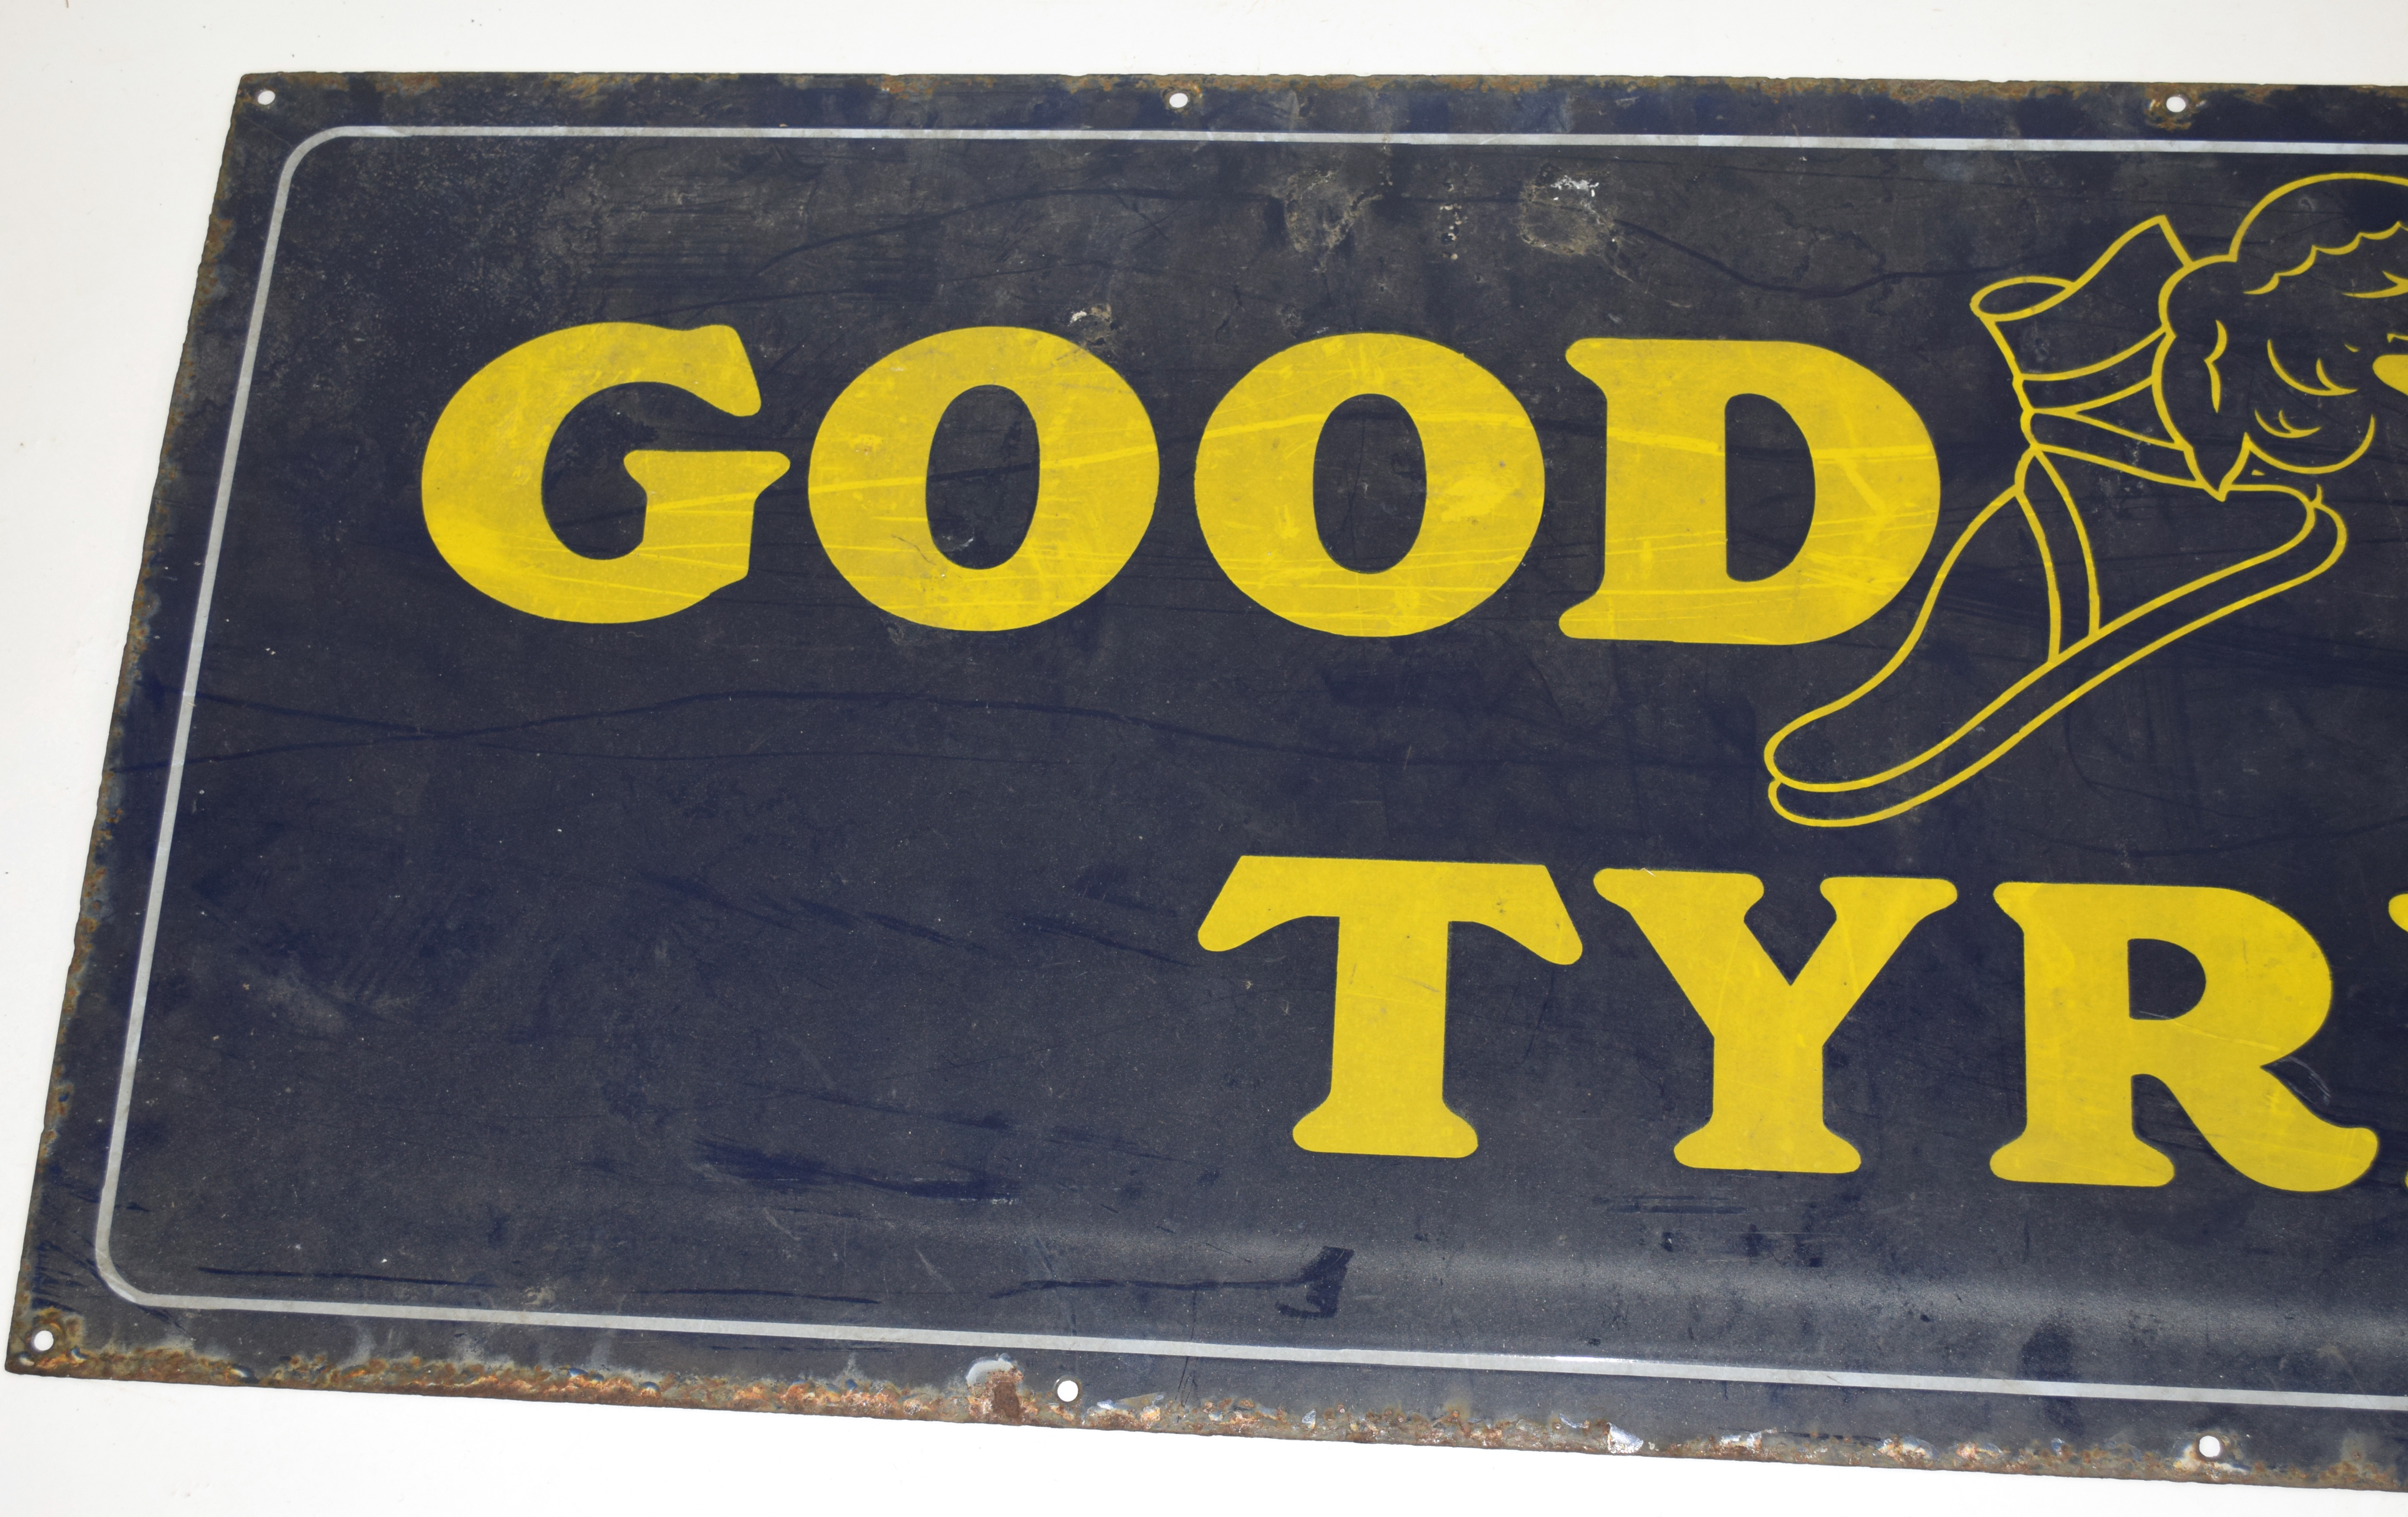 Vintage enamel advertising sign for Goodyear Tyres, yellow lettering on a blue background 153cm - Image 3 of 4